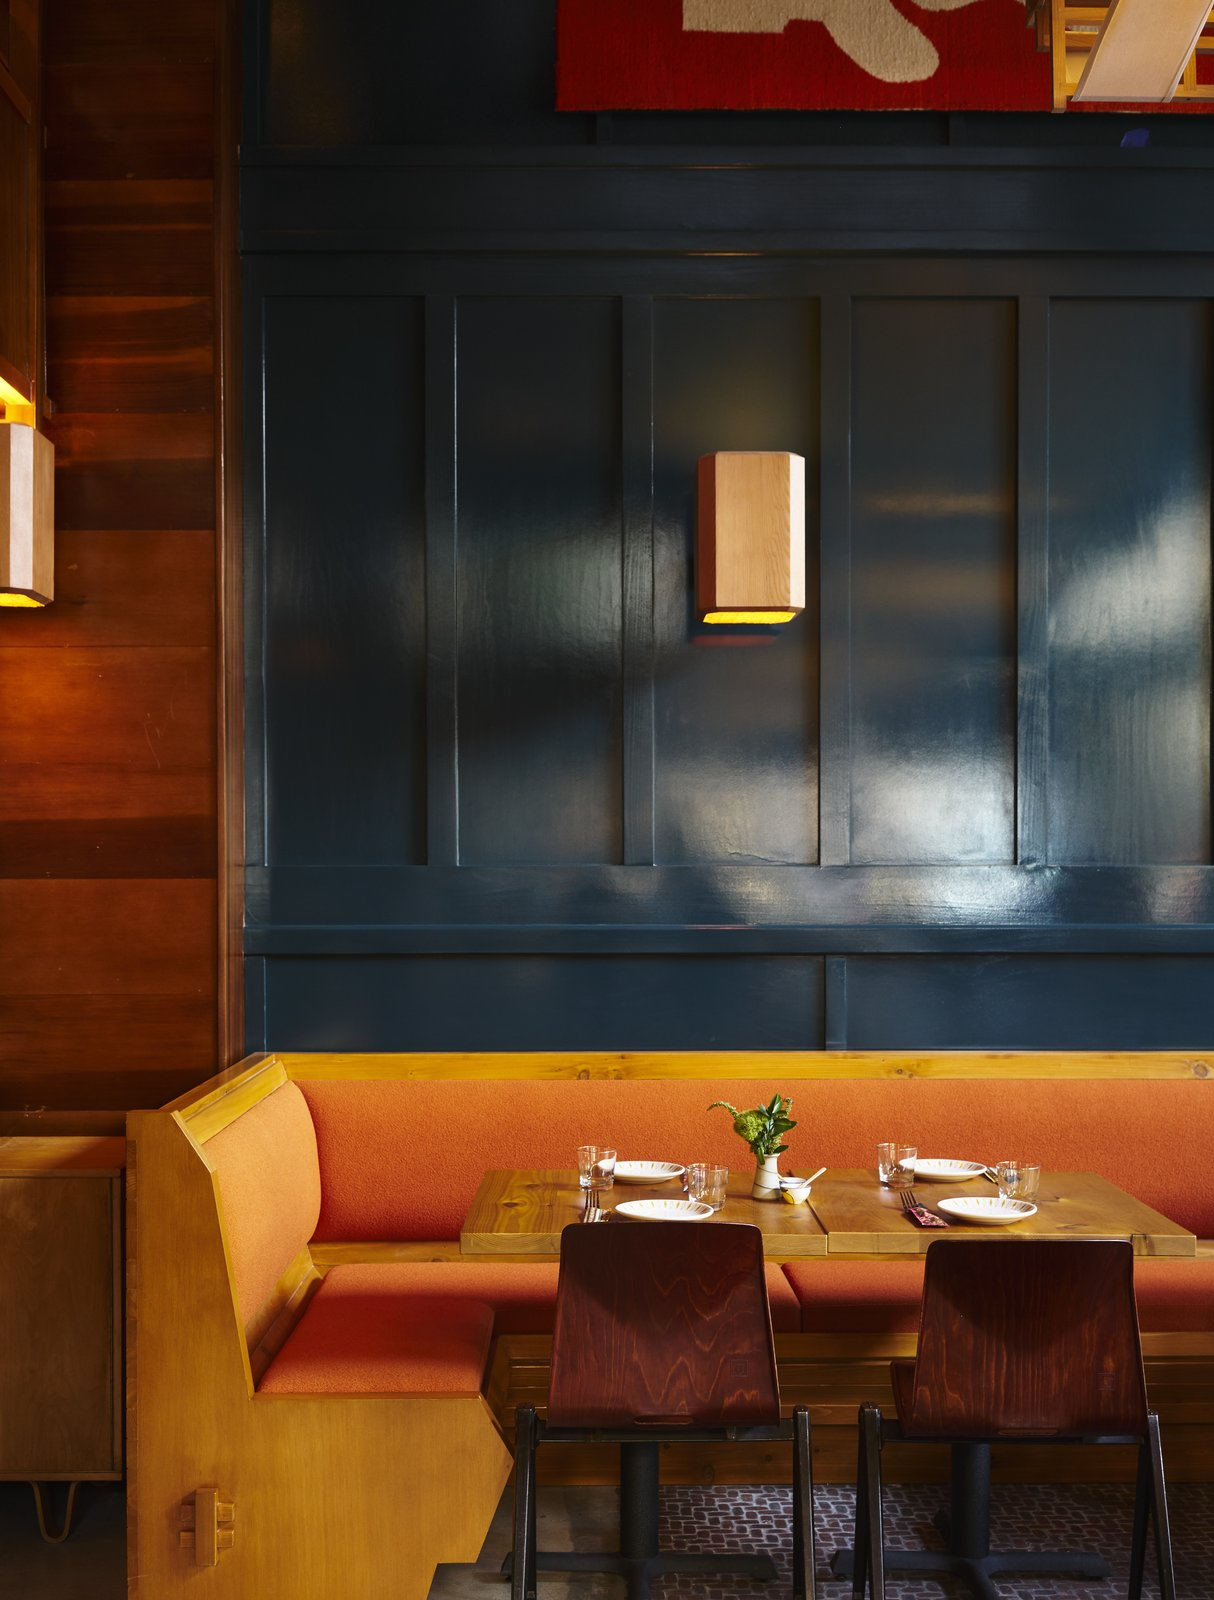 Custom millwork was designed with an arts and craft influence through details and shape, softened by rich fabrics. Tagged: Dining Room, Table, Bench, Chair, and Wall Lighting.  Photo 6 of 10 in A 1920s Office Building Is Revamped as a Craftsman-Inspired Hotel in Los Angeles